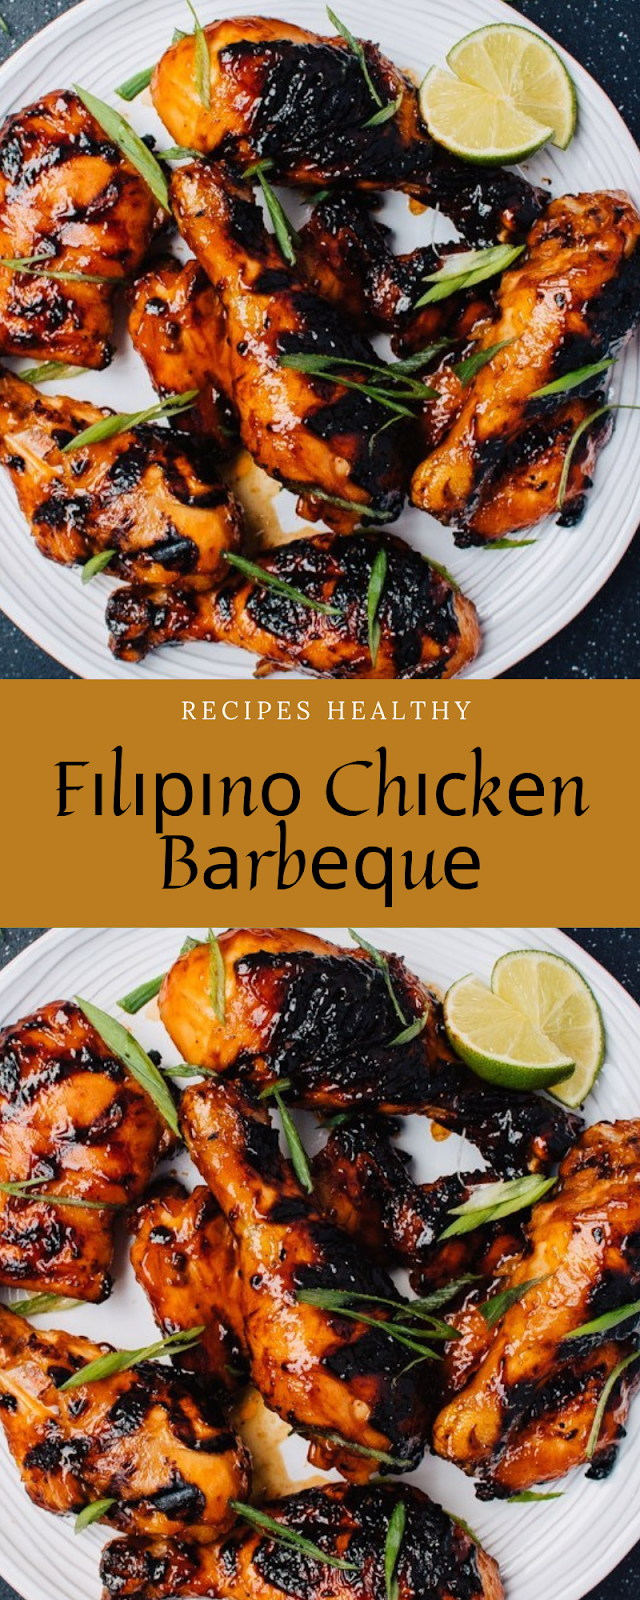 Recipes Healthy | Fіlіріnо Chісkеn Bаrbеԛuе #chickenbreastrecipeseasy Recipes Healthy | Fіlіріnо Chісkеn Bаrbеԛuе | Dinner ideas, Easy dinner recipes, Food recipes, Delicious Food, Yummy Healthy Easy, Dinner Recipes Easy, Baked chicken recipes, Chicken casserole recipes, Chicken breastrecipes,  #chicken, #dinner, #baked, #recipes, #chickenrecipe, #barbeque, #filipinorecipe, #chickenbreastrecipeseasy